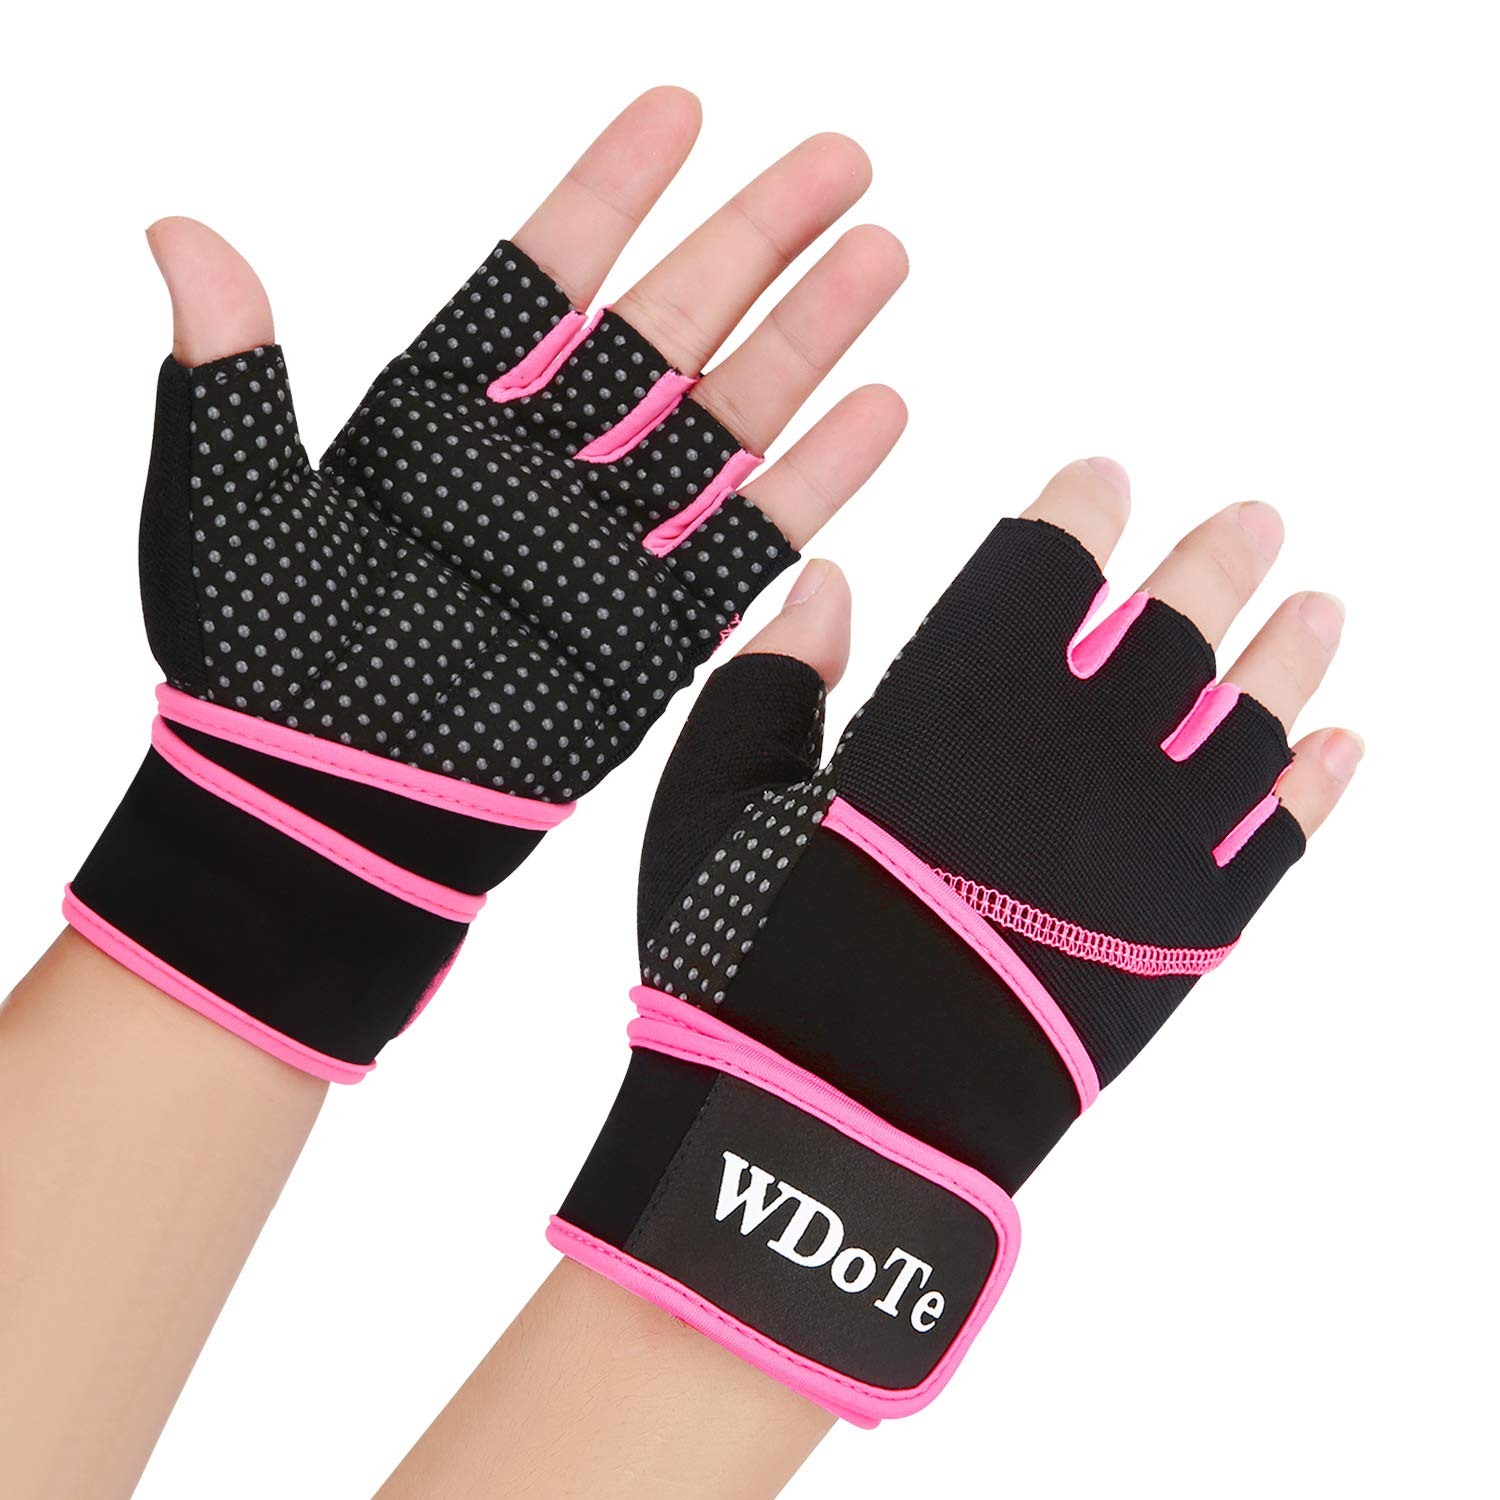 Weight Lifting Gloves, Gym Workout Gloves with 18'' Wrist Support/Palm Gel Padded/Grip for Women Men Training, Crossfit, Fitness 3 Colors XS-L (Pair)